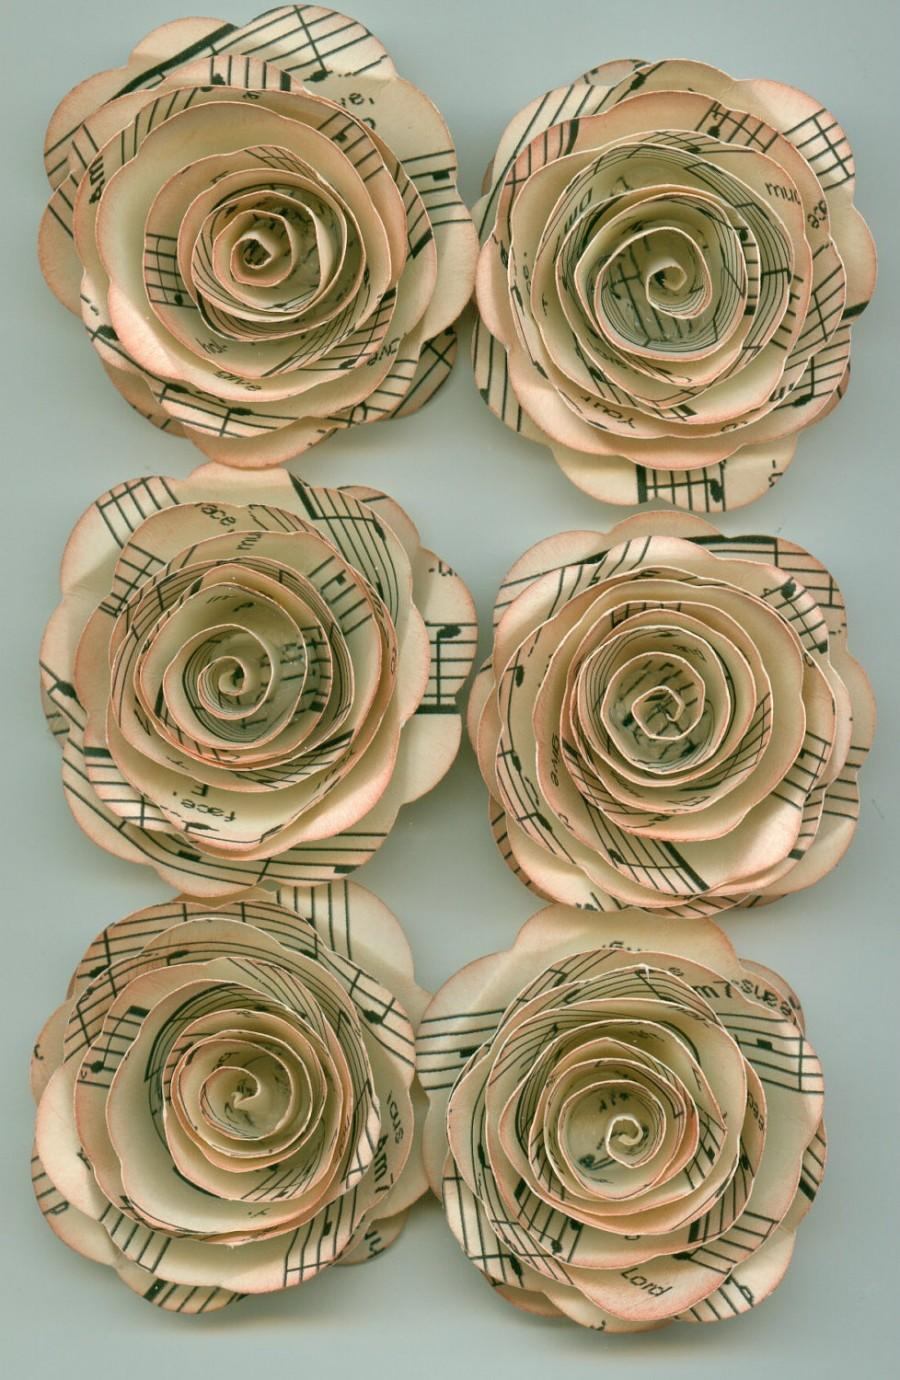 Antique Music Sheet Handmade Large Spiral Paper Flowers 2446745